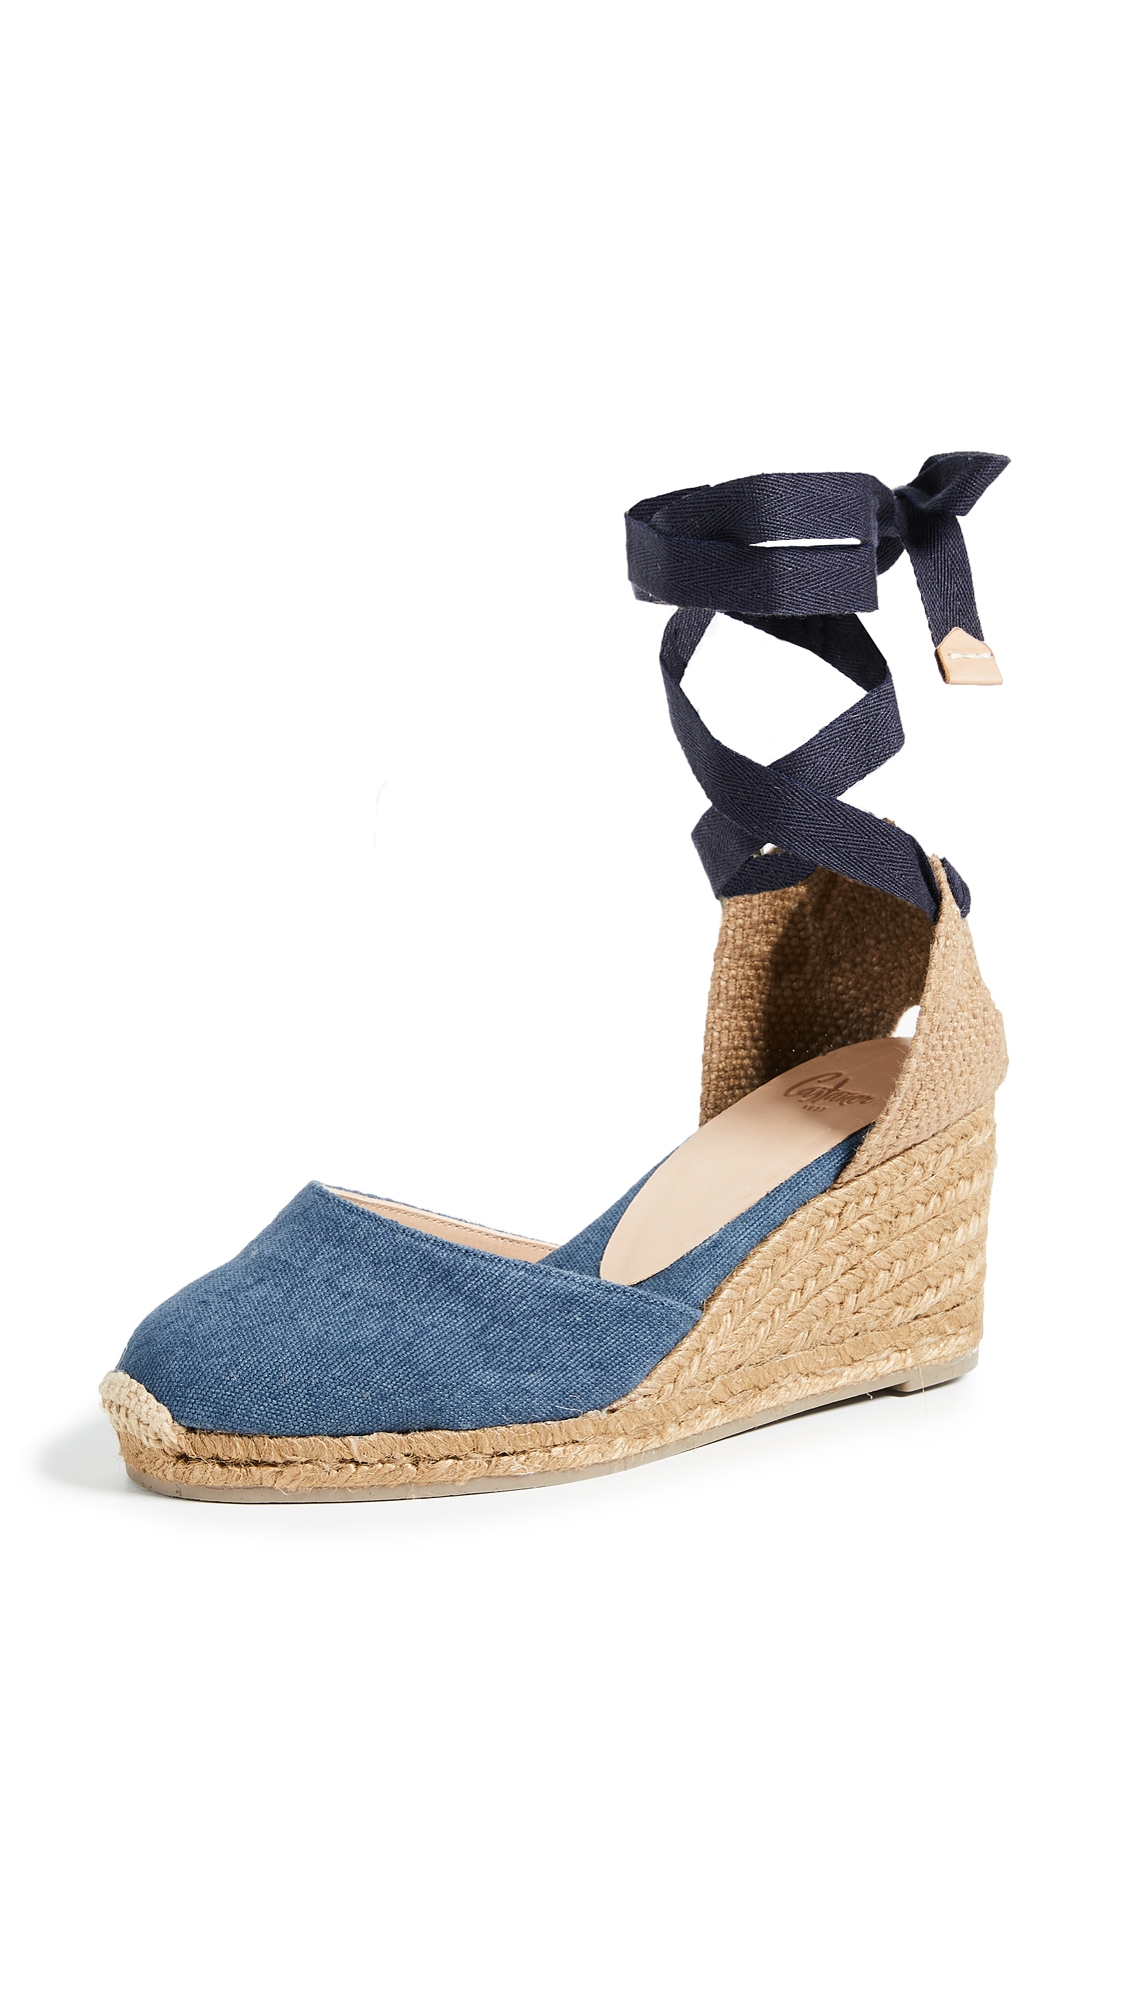 Castaner Carina Wedges shoes online shopping at Shoe Trove